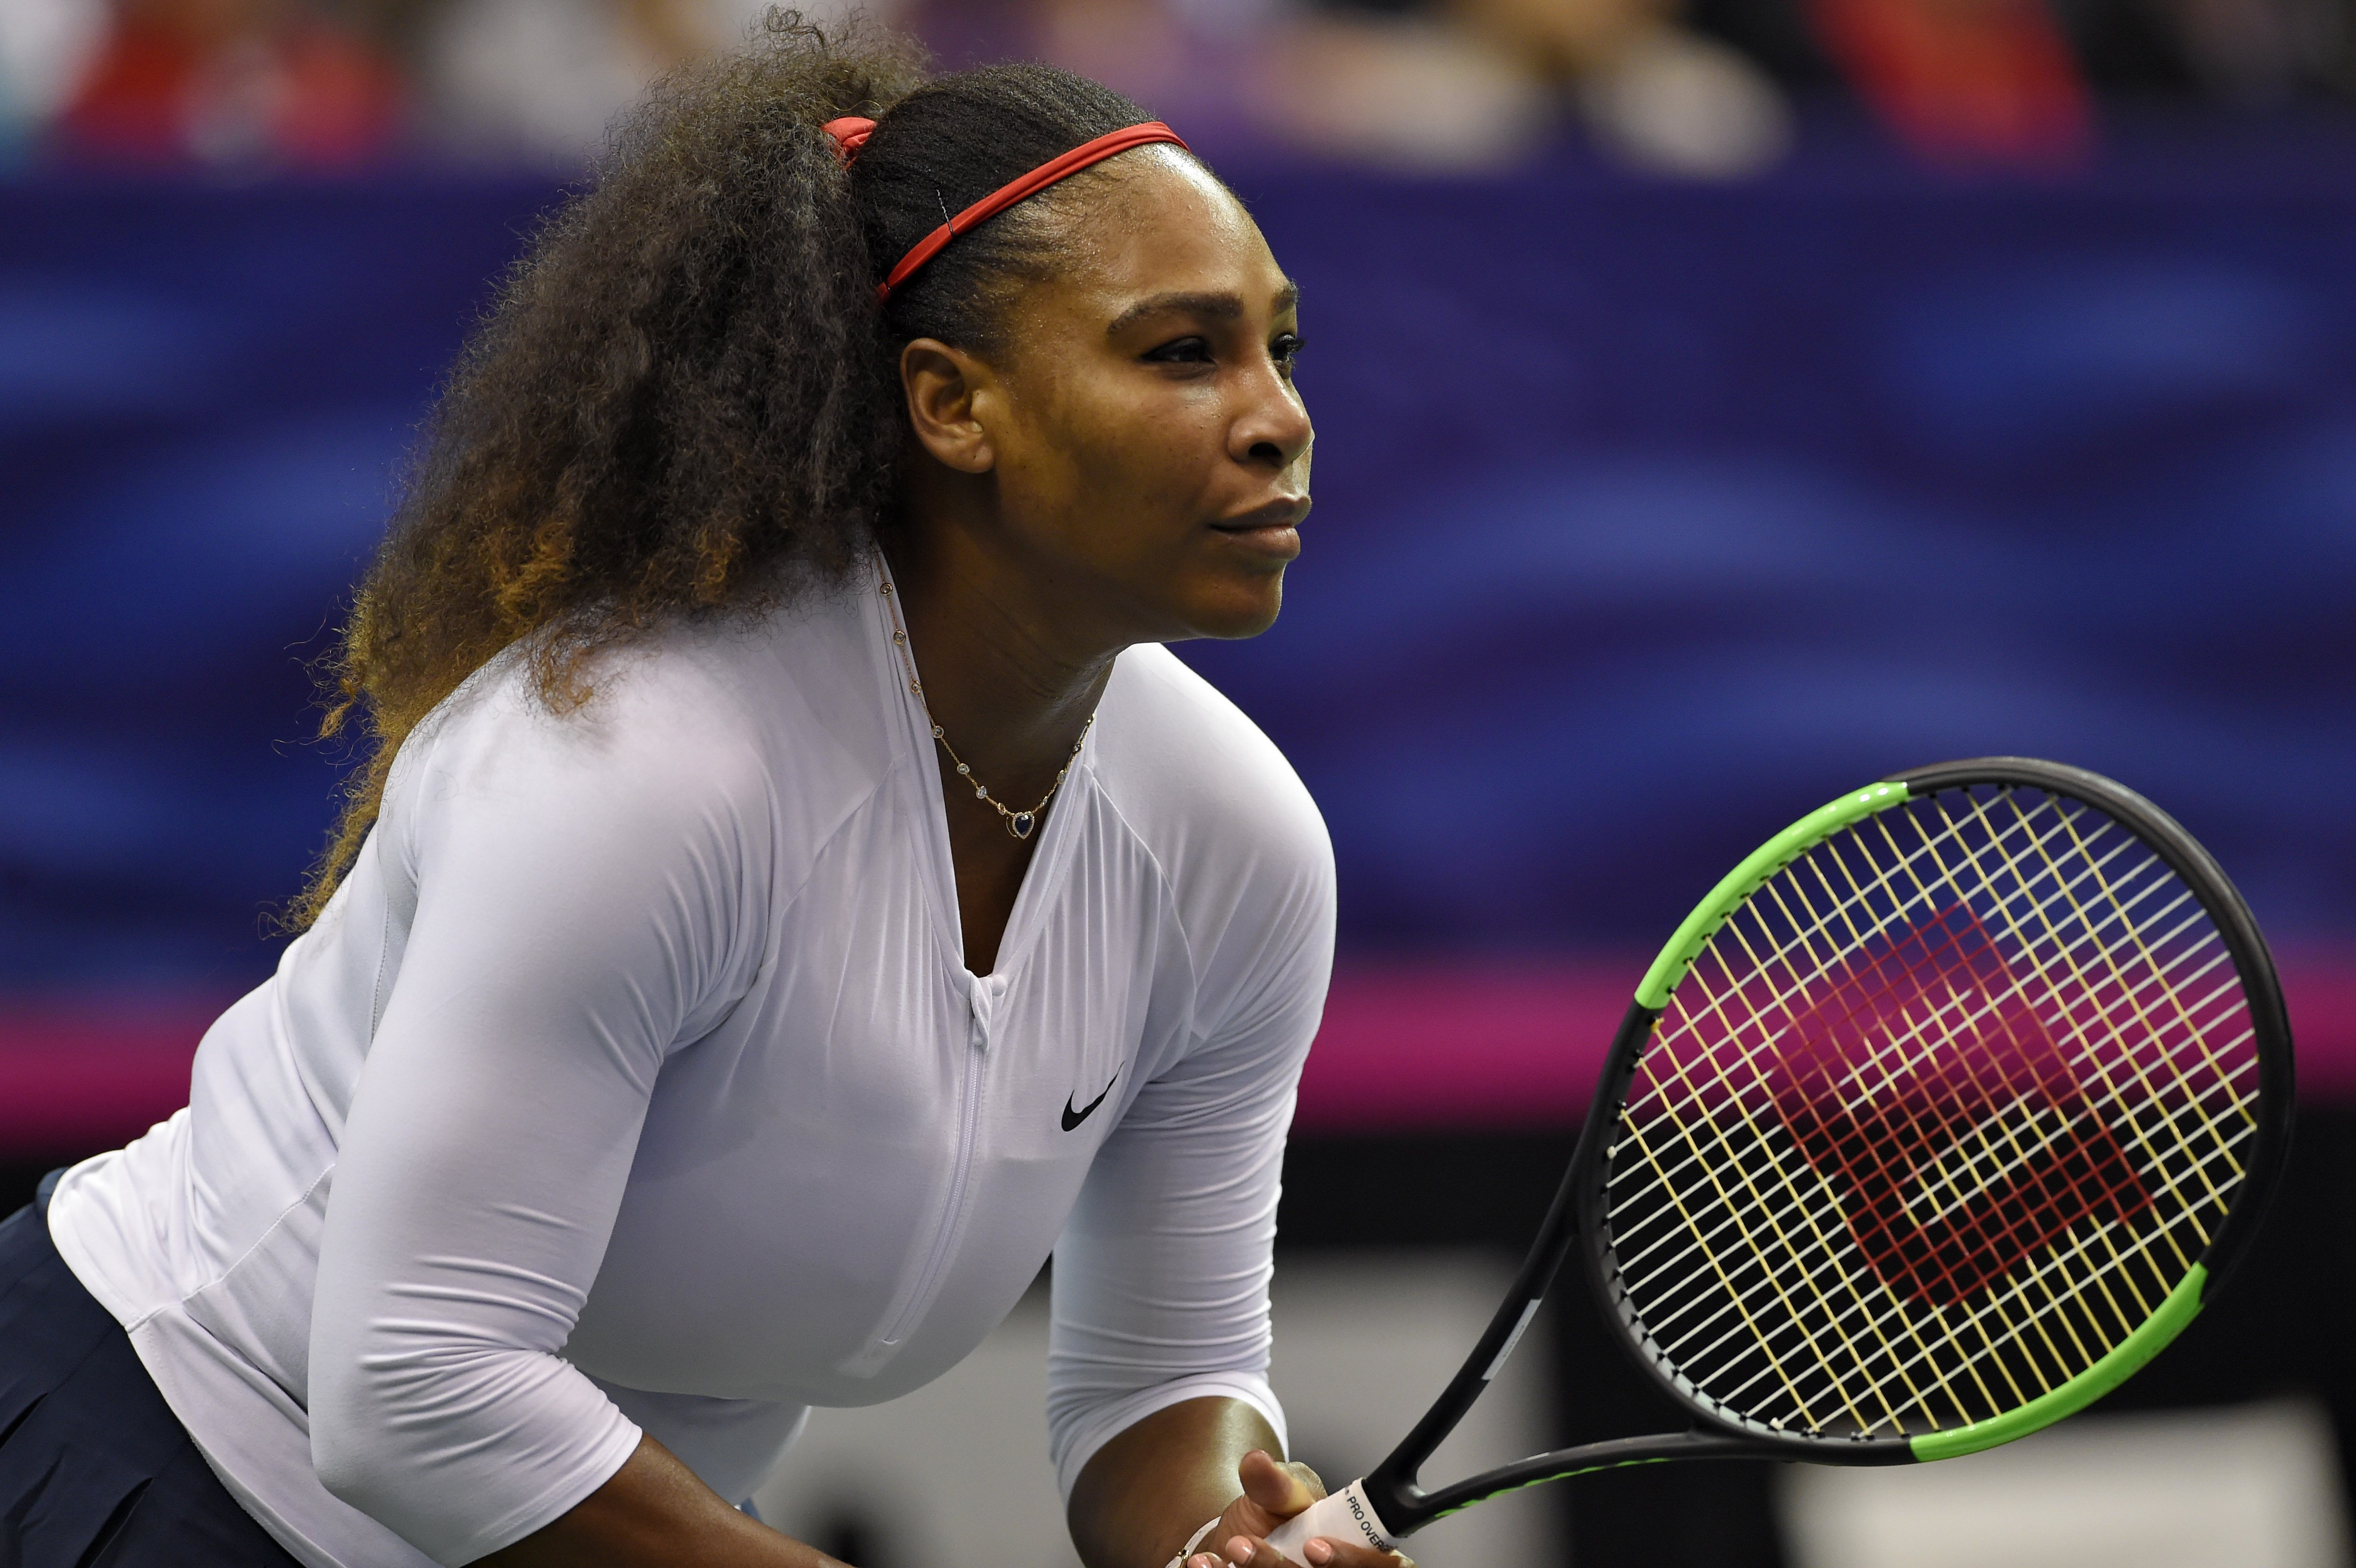 Serena Williams at the 2018 Fed Cup at US Cellular Center on February 11, 2018 in Asheville, North Carolina.  Photo: Getty Images